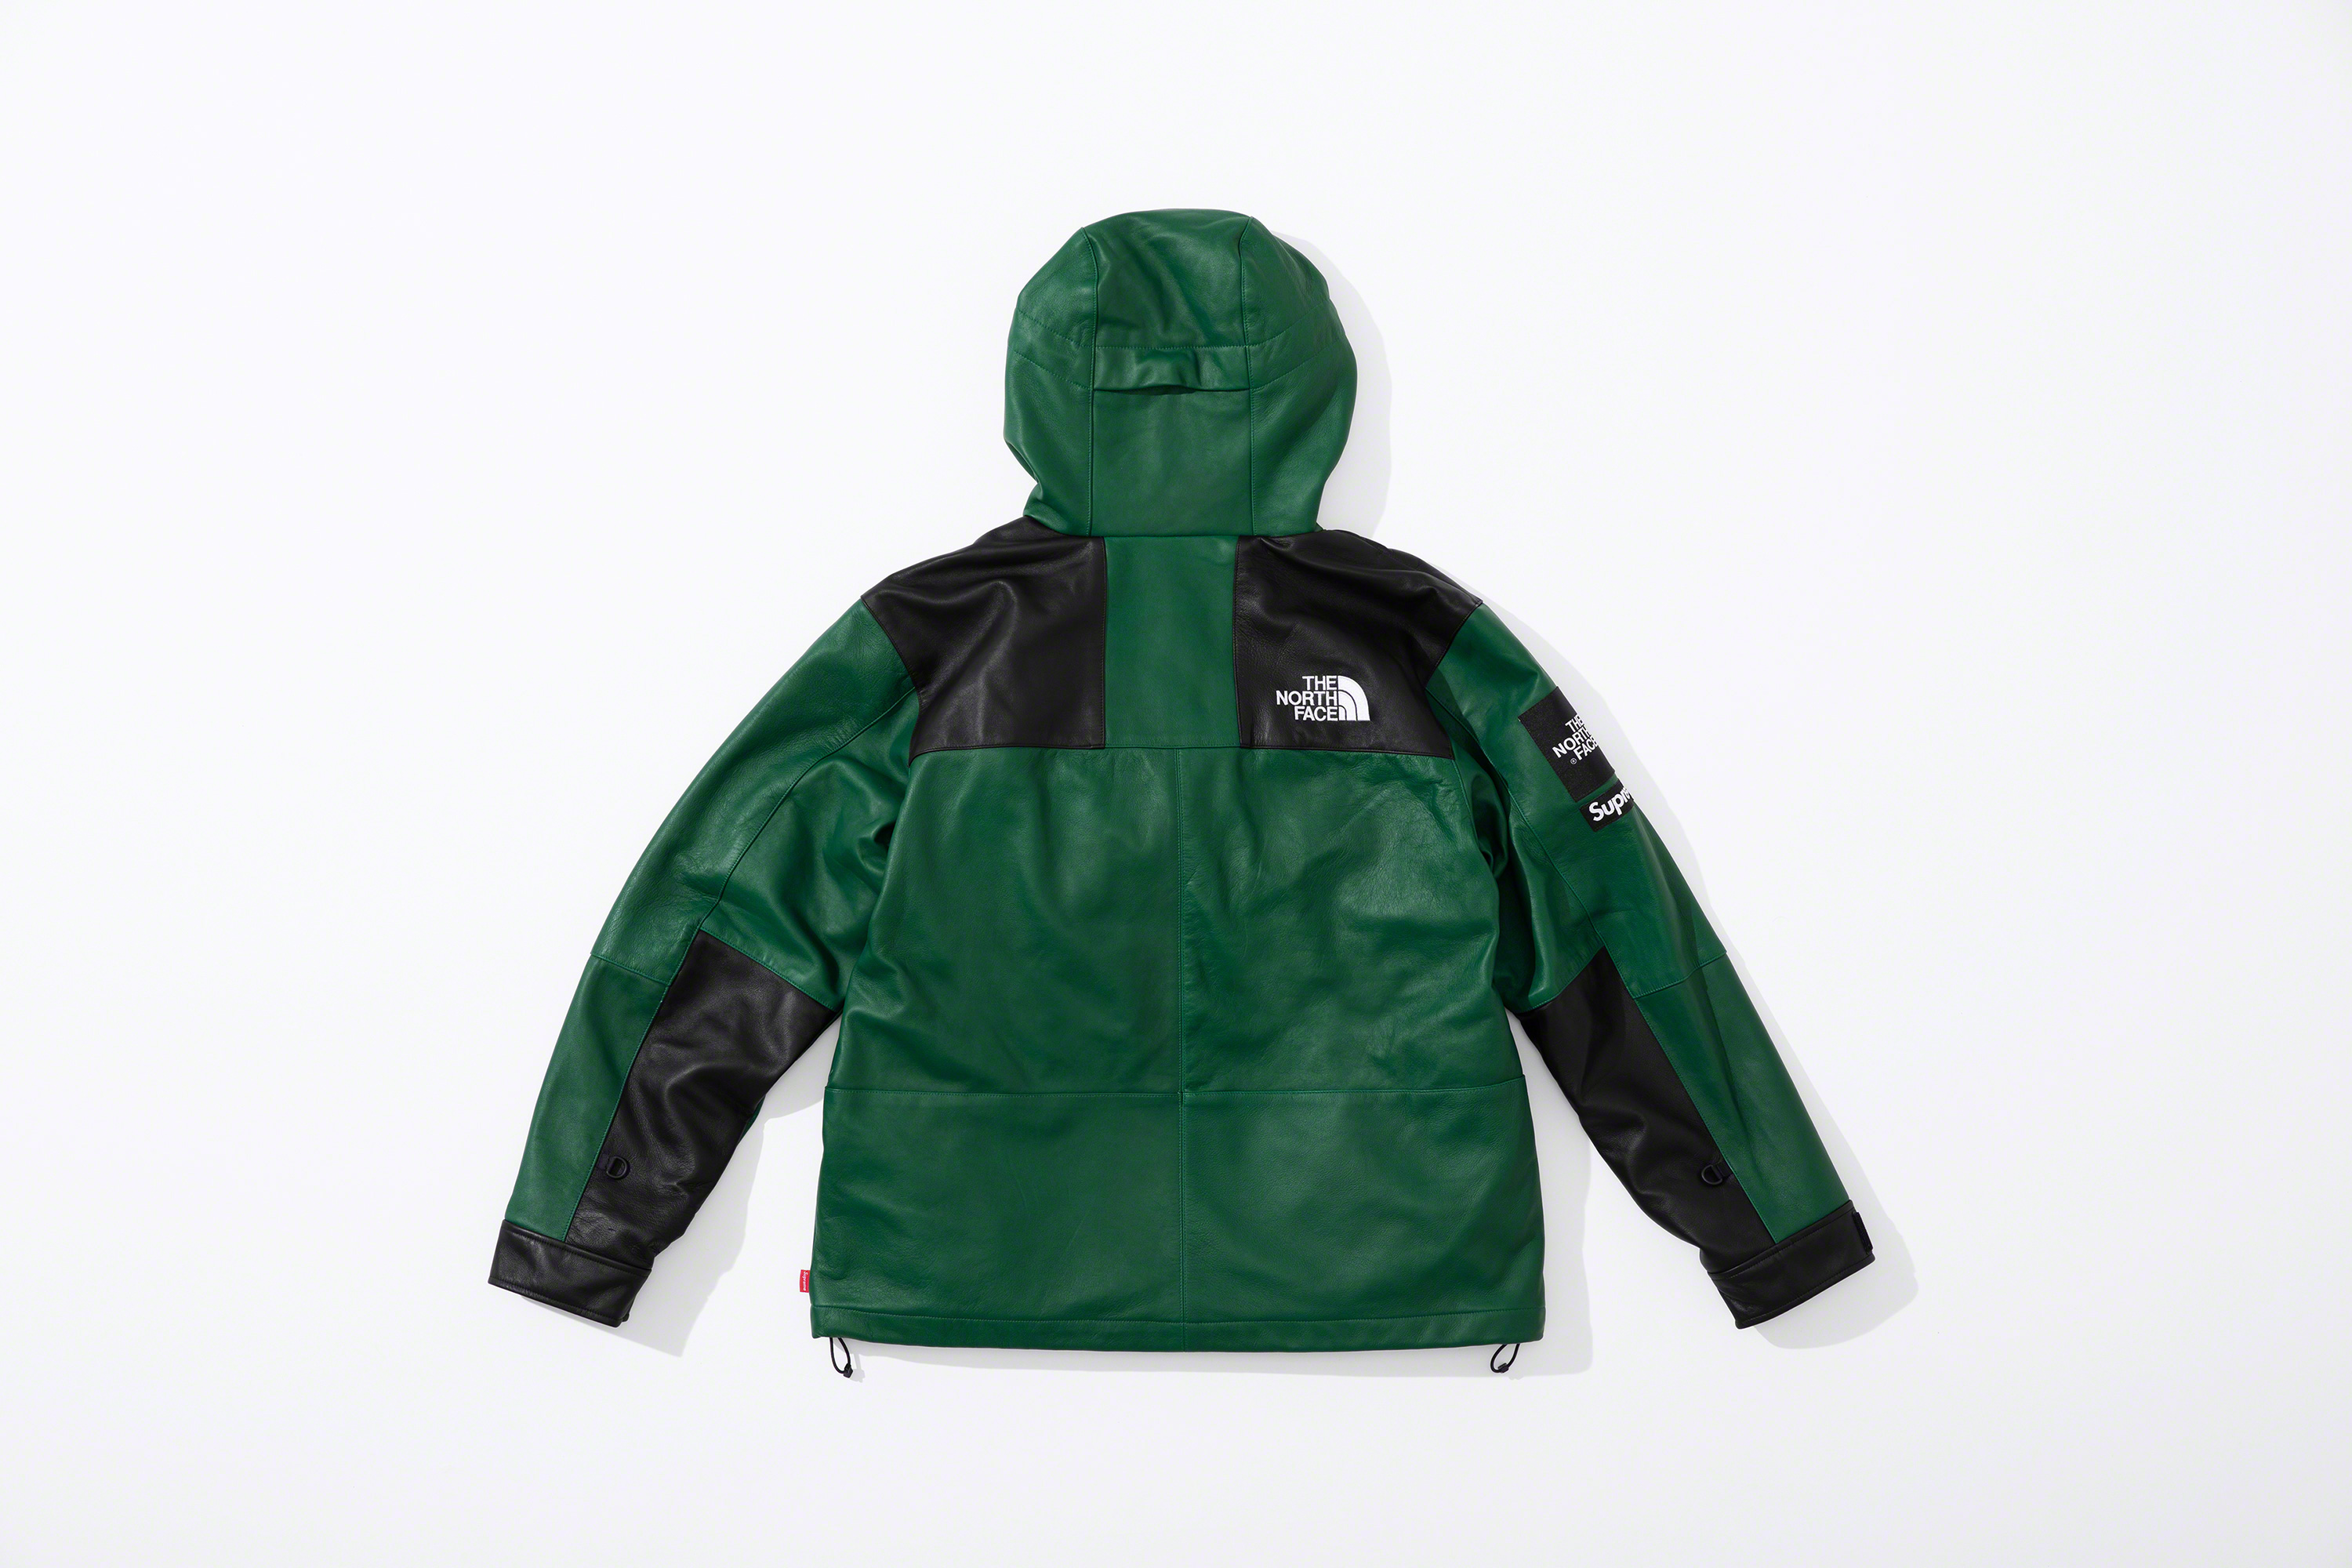 supreme-the-north-face-leather-mountain-parka-2018aw-release-20181020-week9